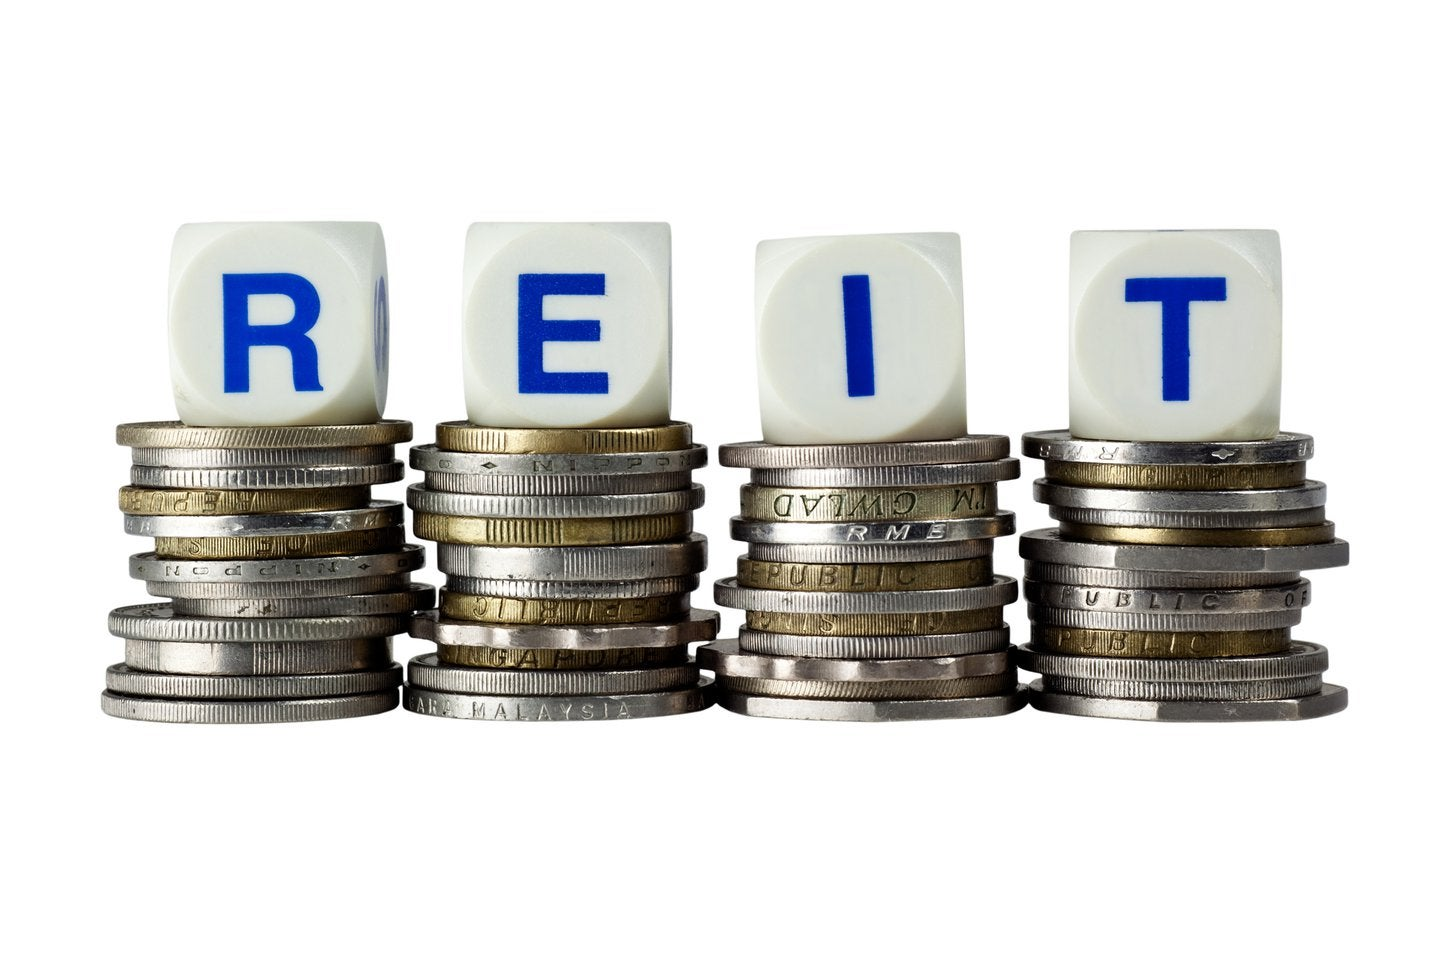 REIT on white dice on top of stacks of coins